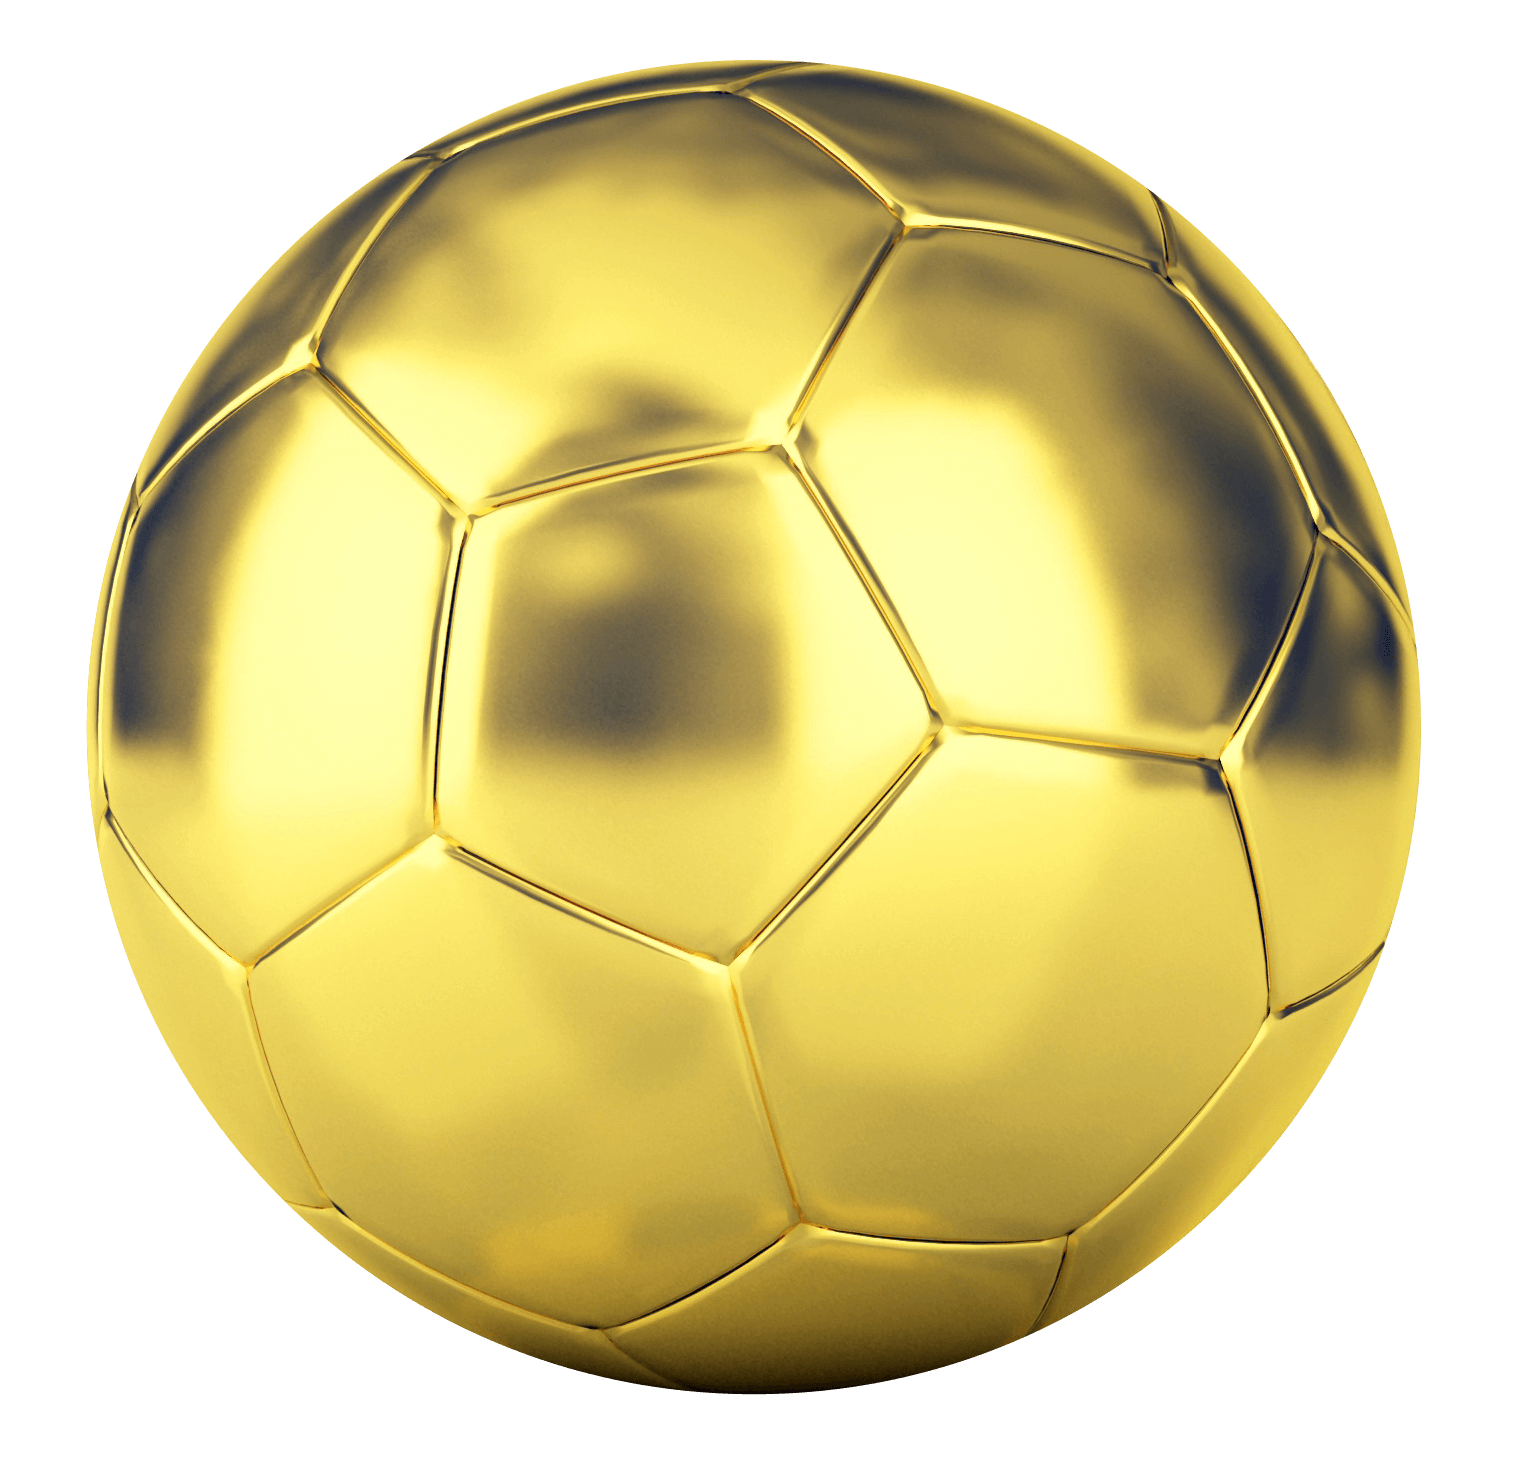 Soccer Ball PNG Image.